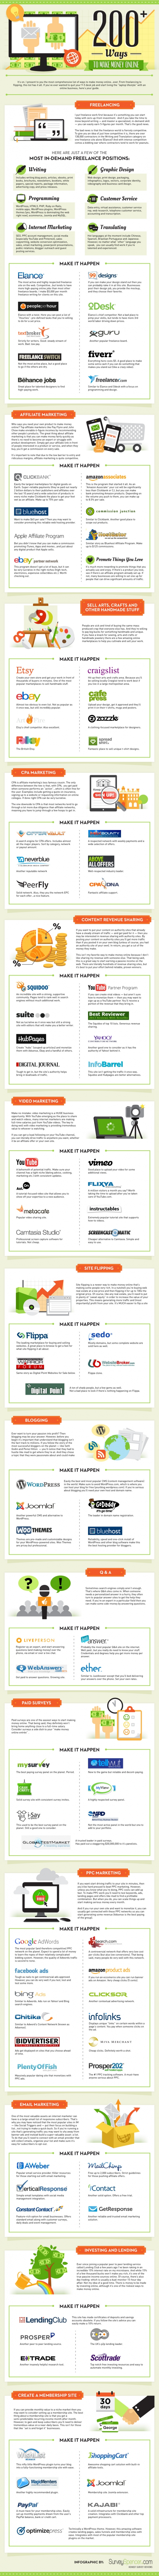 Make-Money-Online_infographic